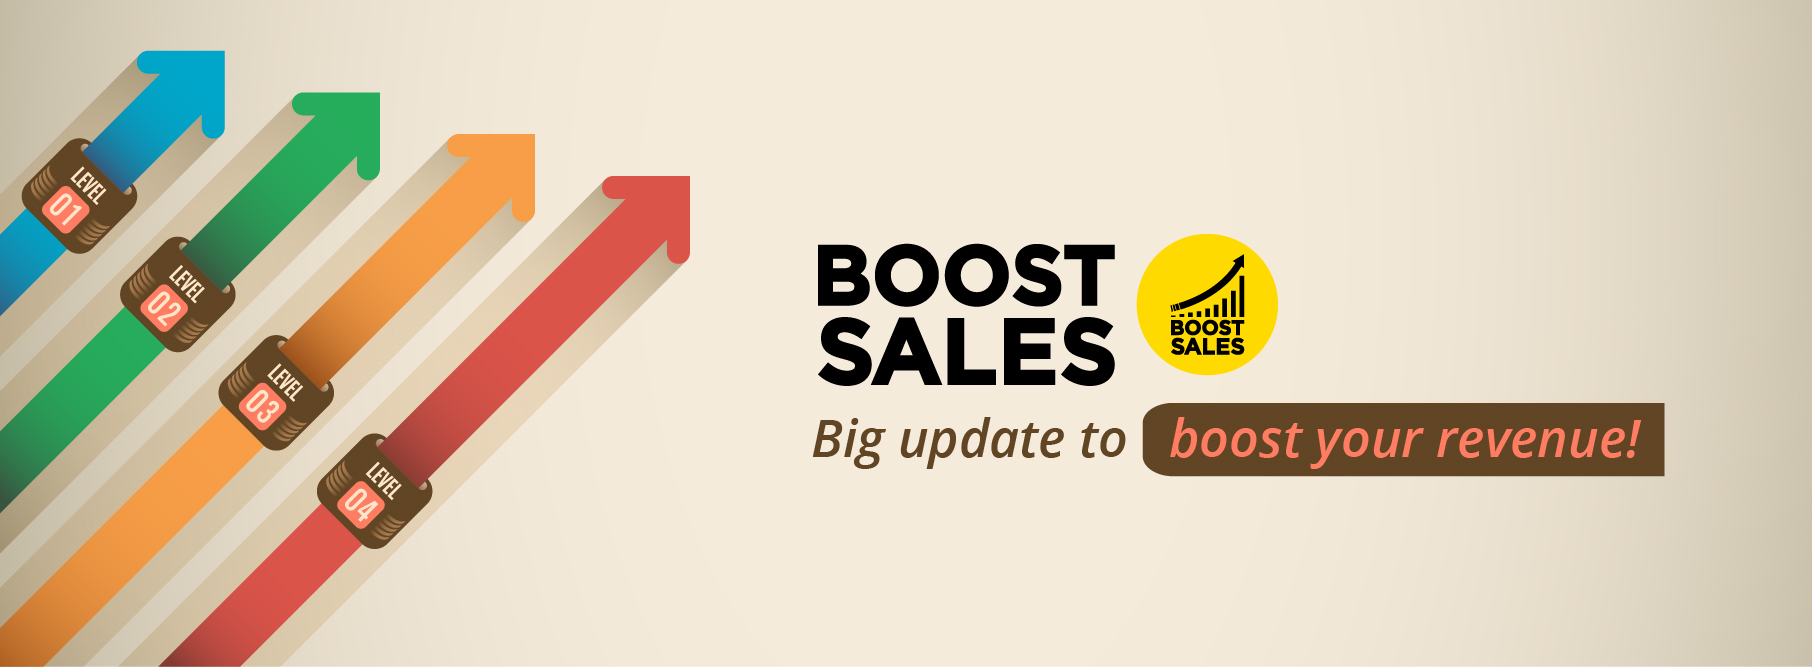 Boost Sales app new features